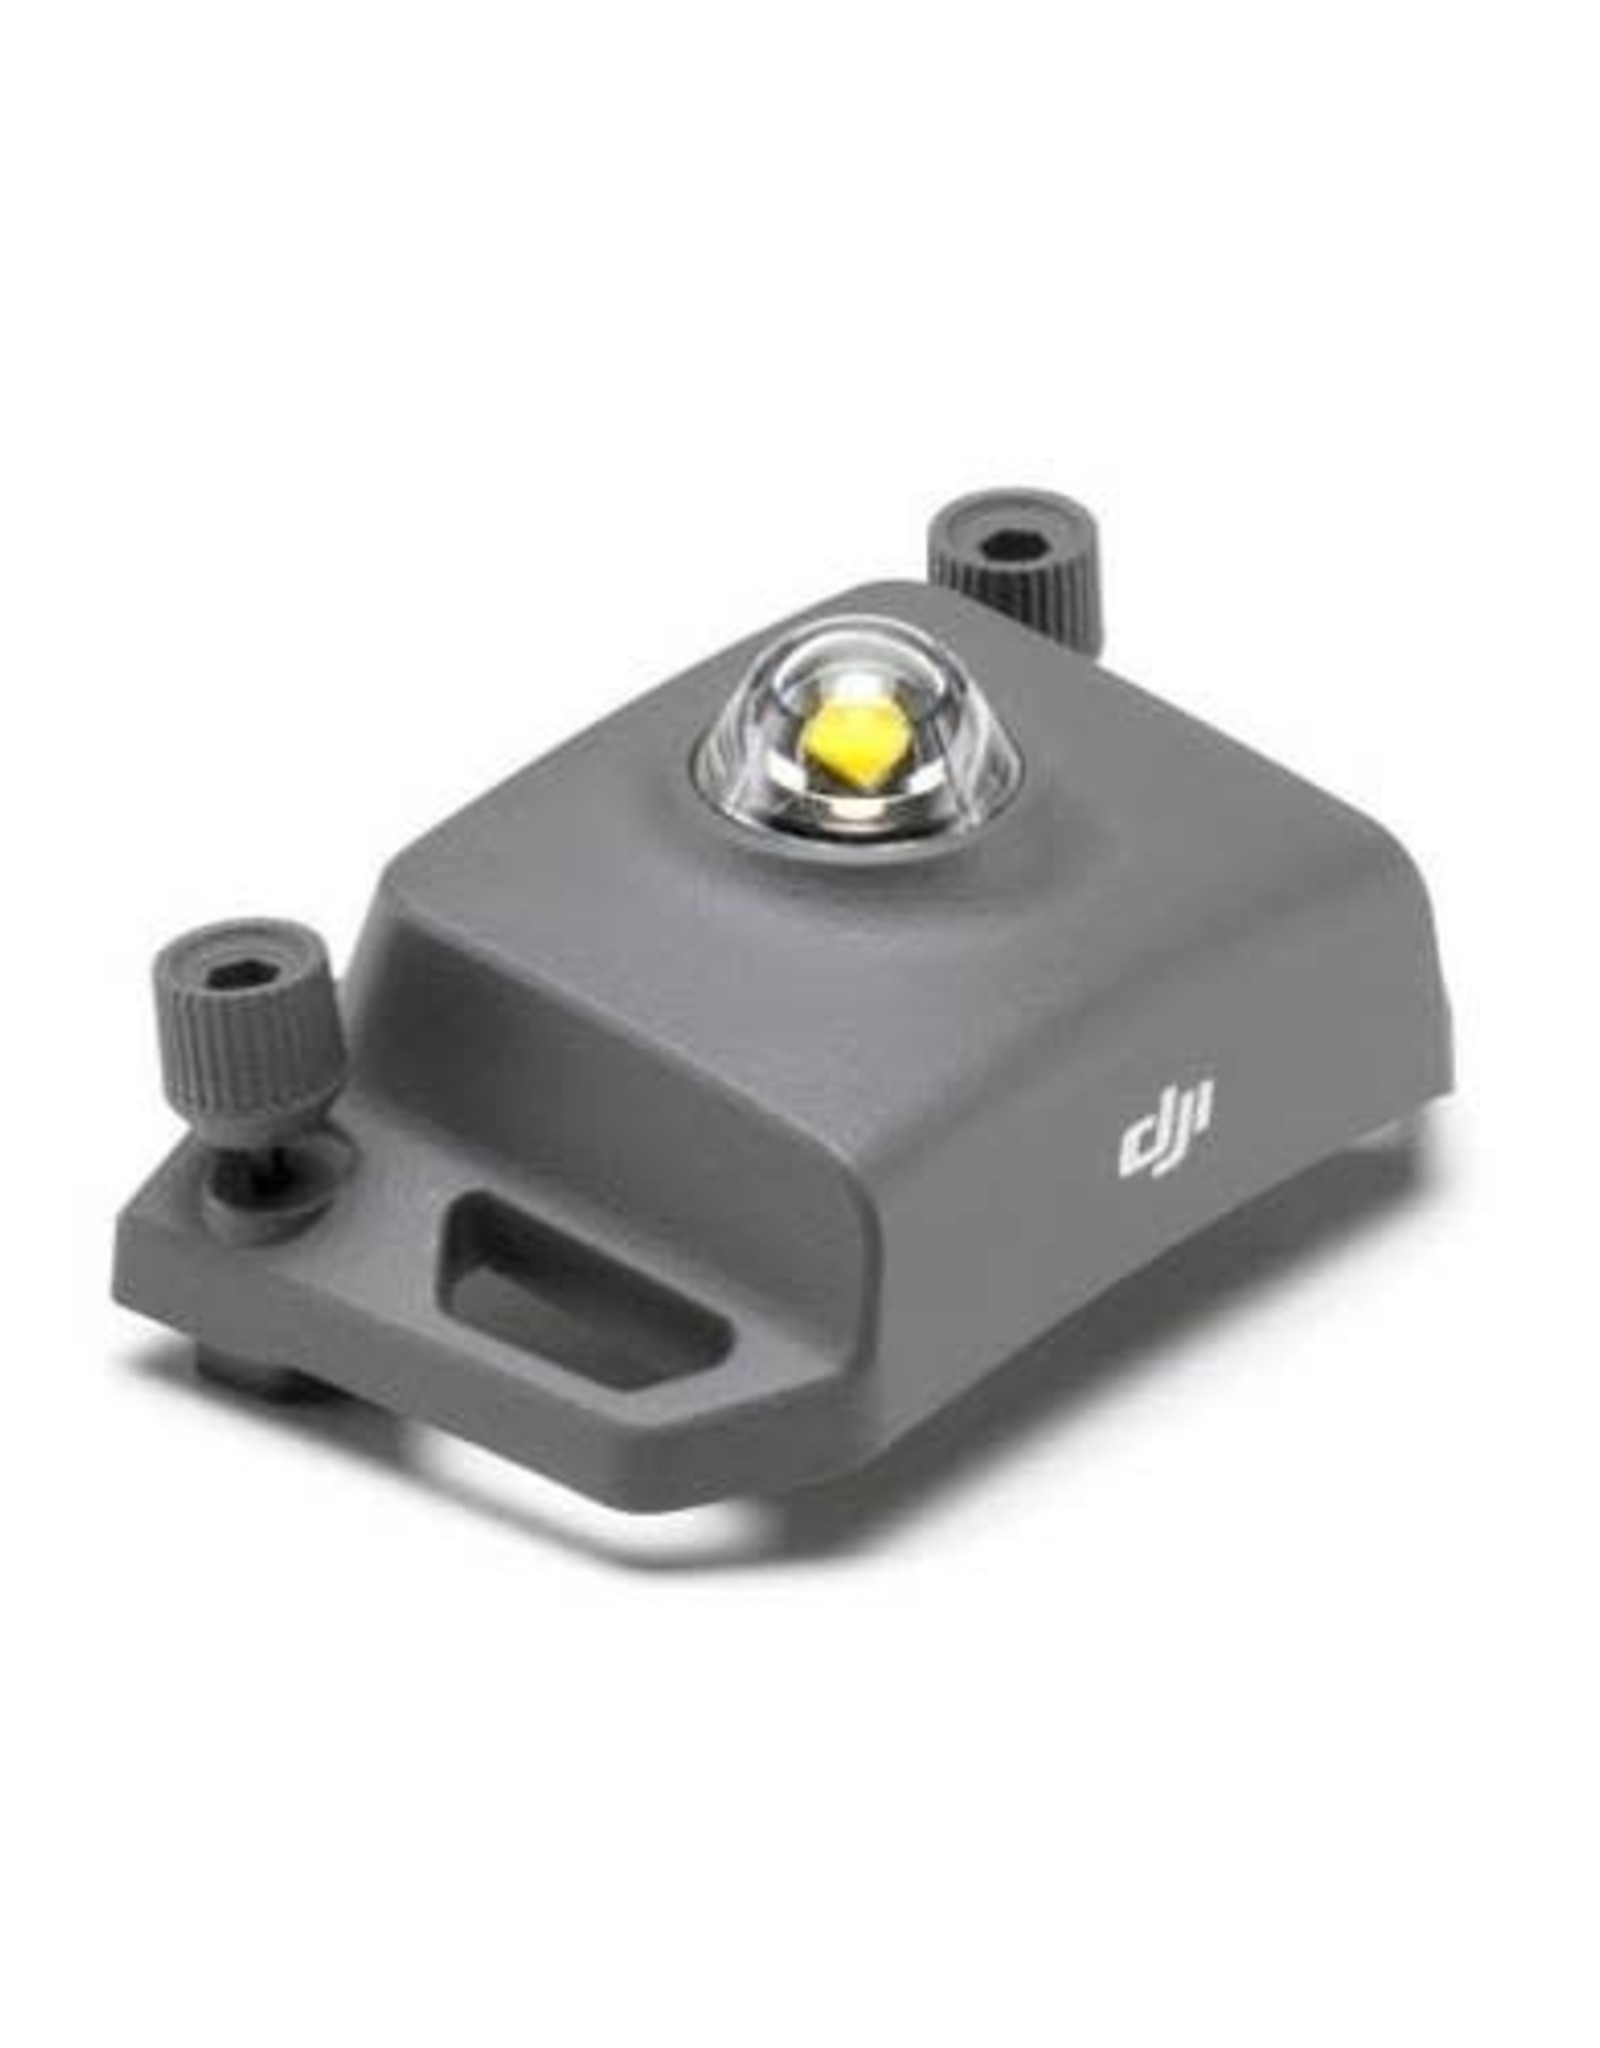 DJI DJI Mavic 2 Enterprise Beacon